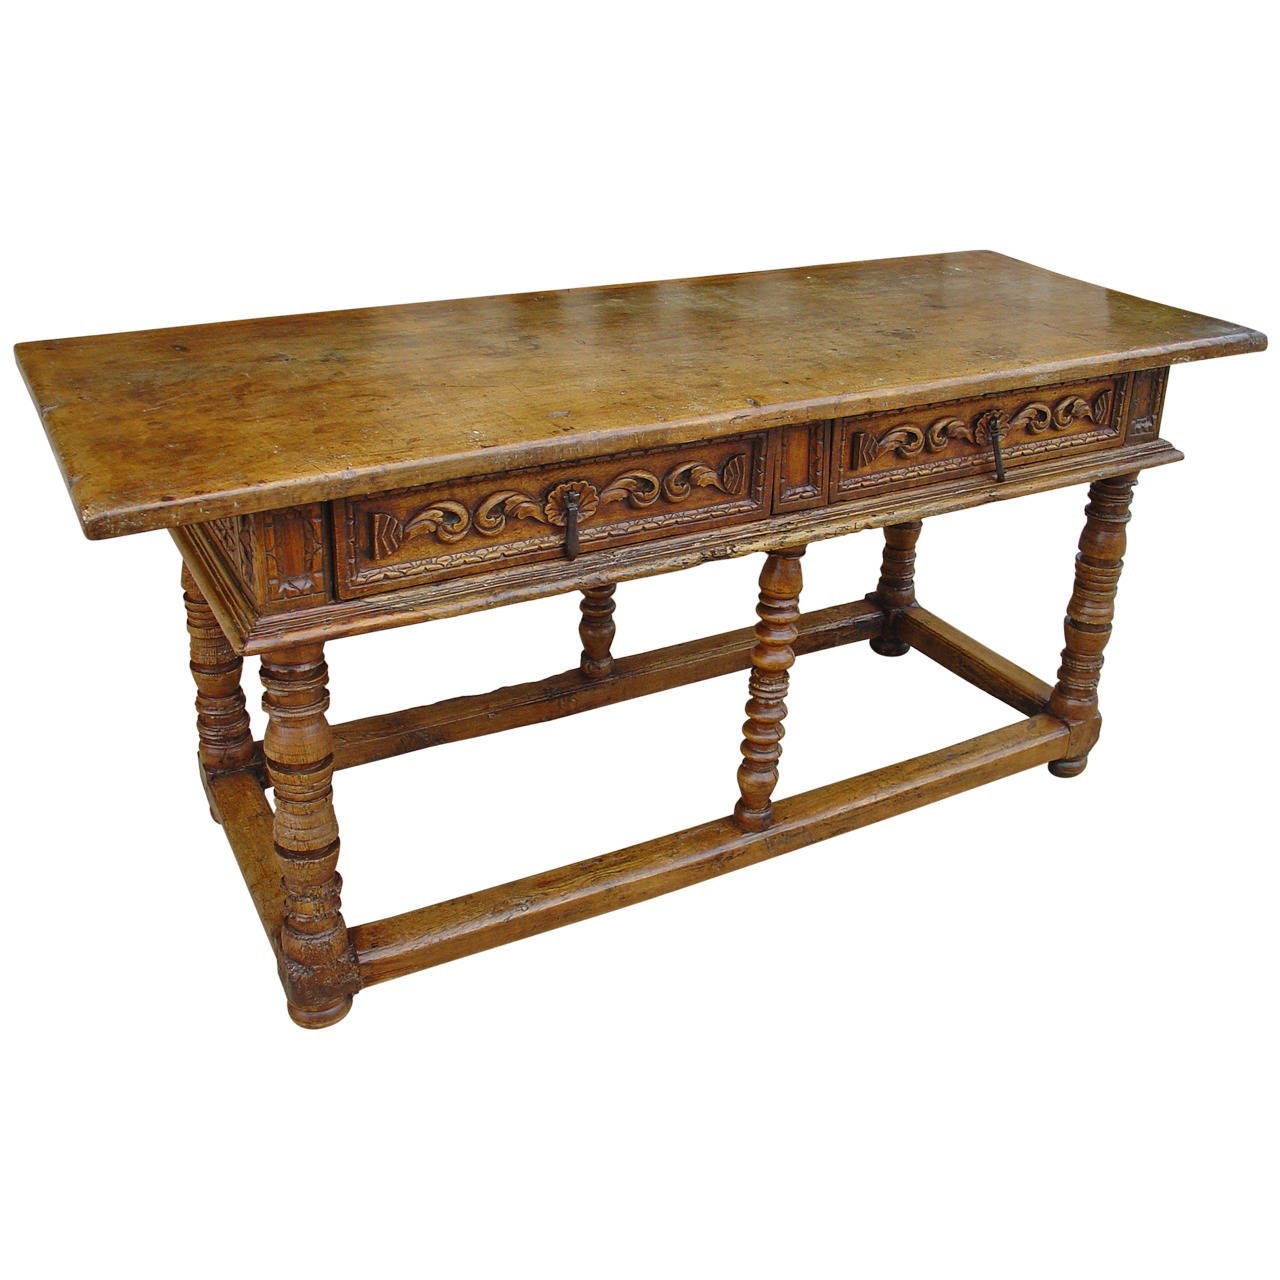 Antique spanish walnut wood table from the 1600 s at 1stdibs for Table in spanish